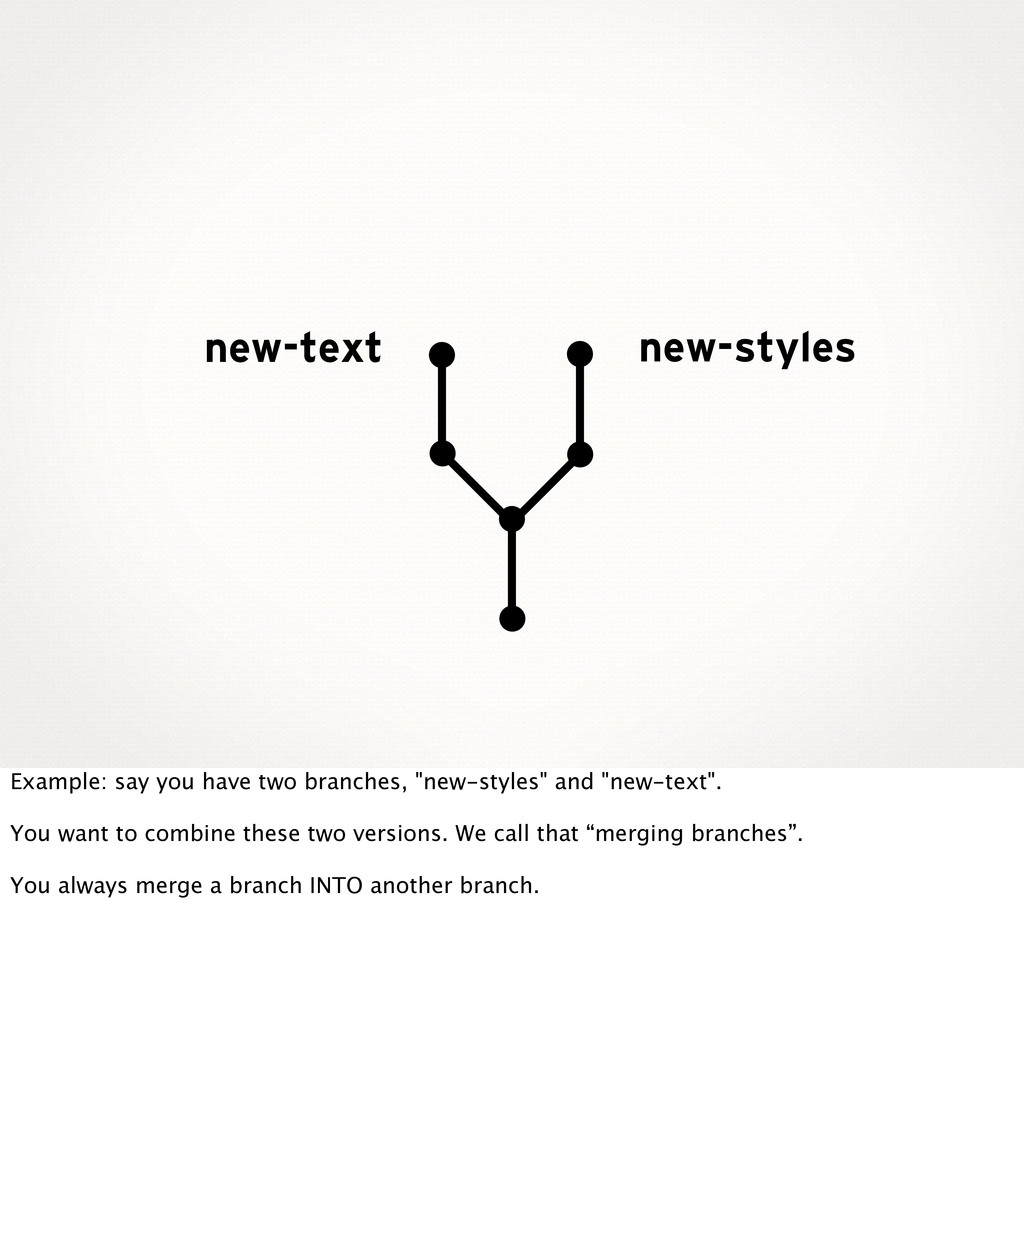 new-styles new-text Example: say you have two b...